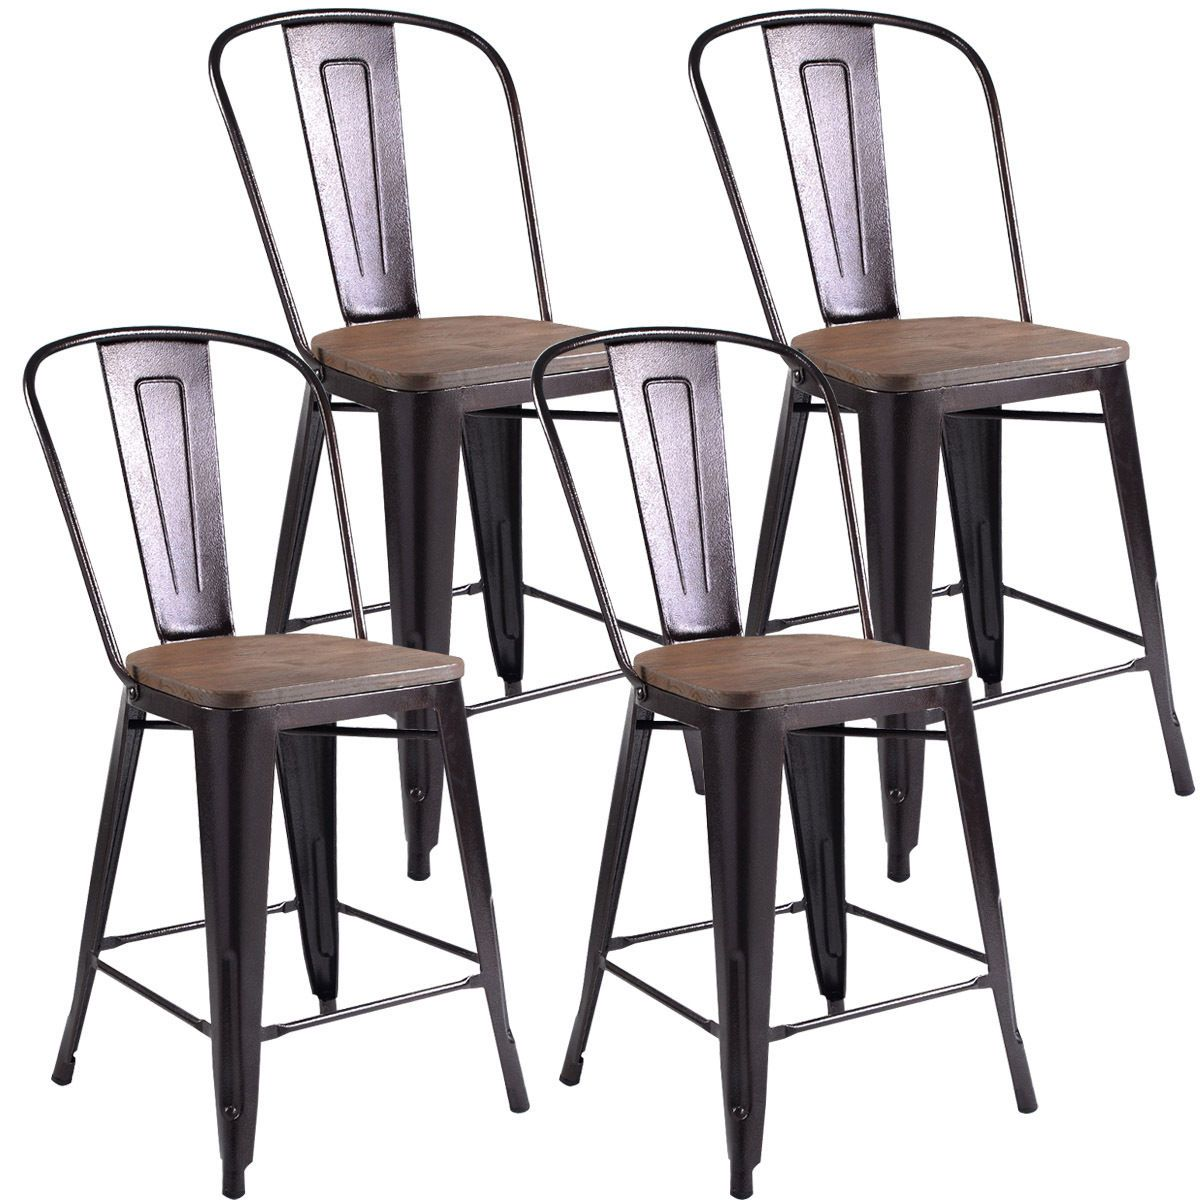 Home Wood counter stools, Kitchen stools, Metal dining